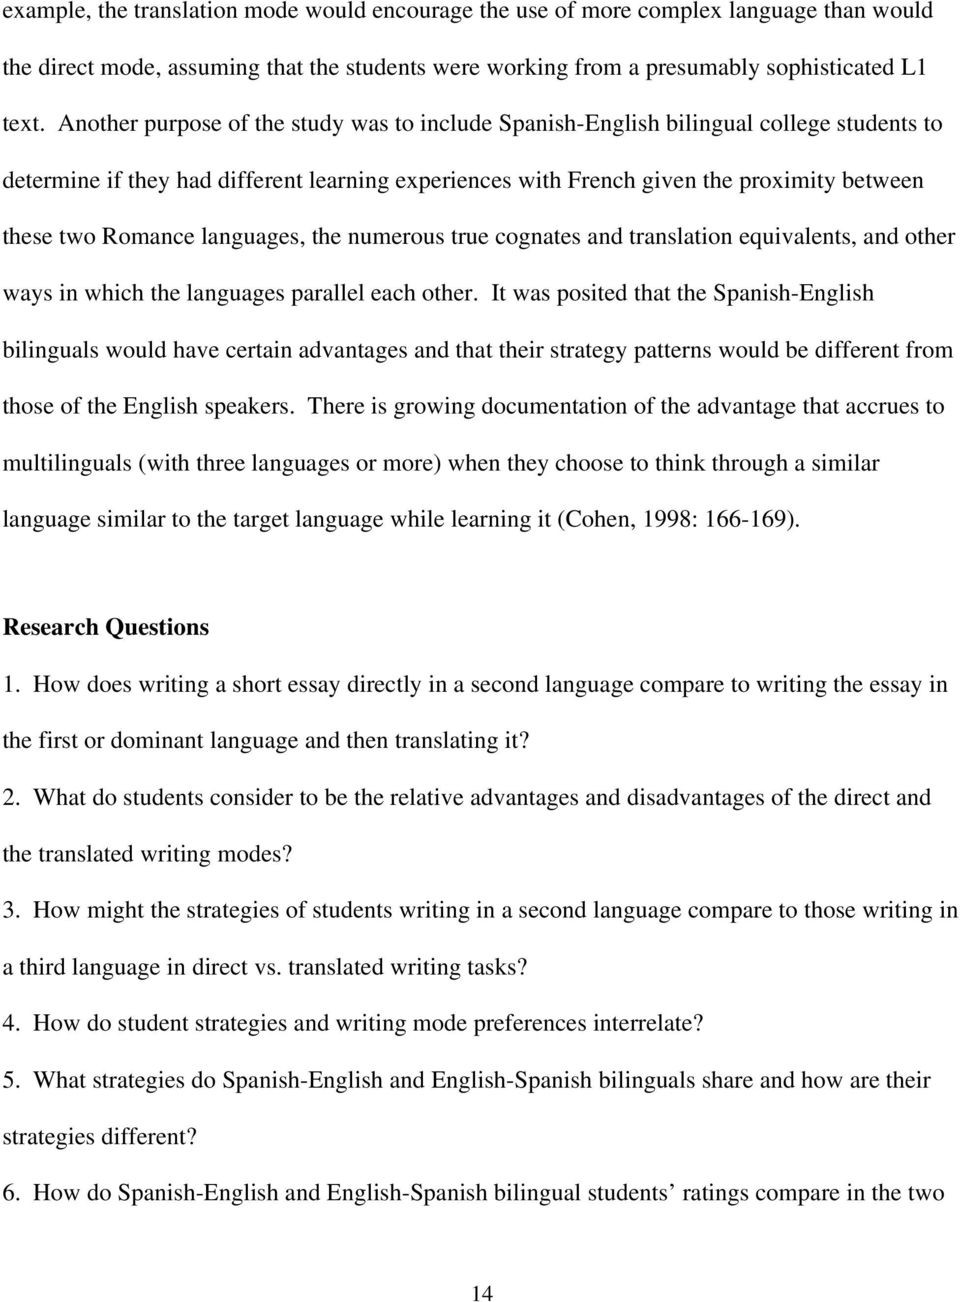 003 Translate Essay To Spanish Writing An In Direct Vs Translated What How Write About Yourself Pa Teaching Google Your My Tips Essays Phrases Staggering Into Does Mean 960